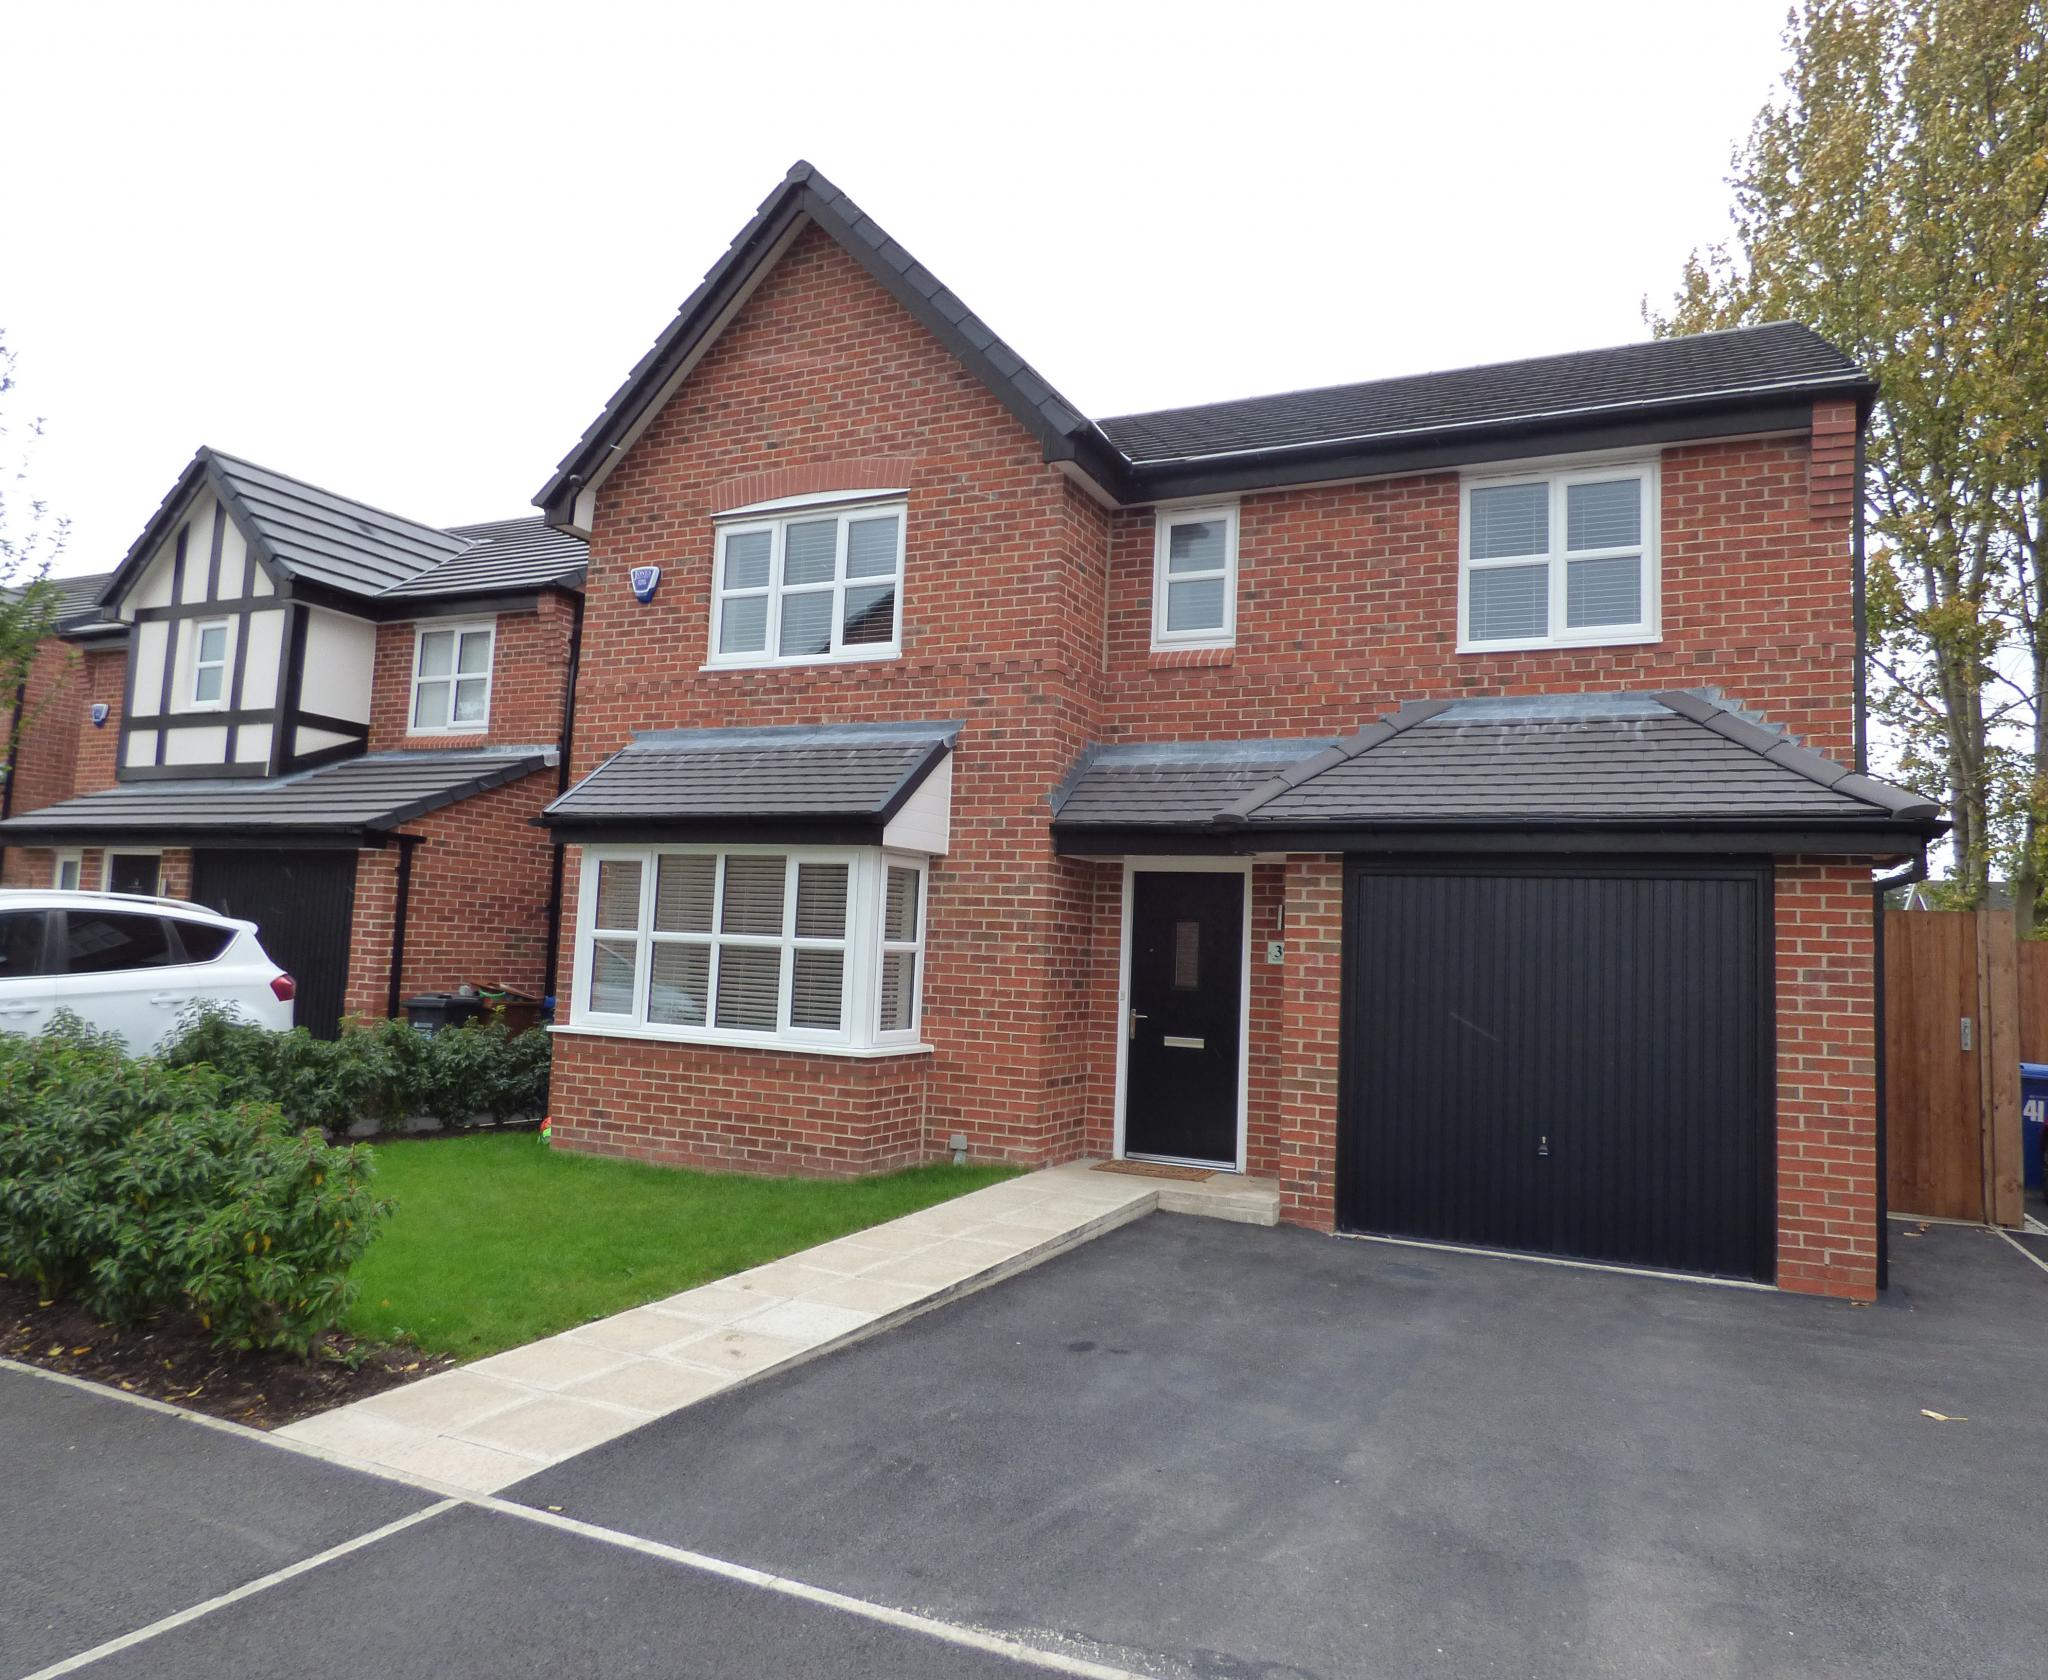 4 Bedroom Detached House For Sale - 1